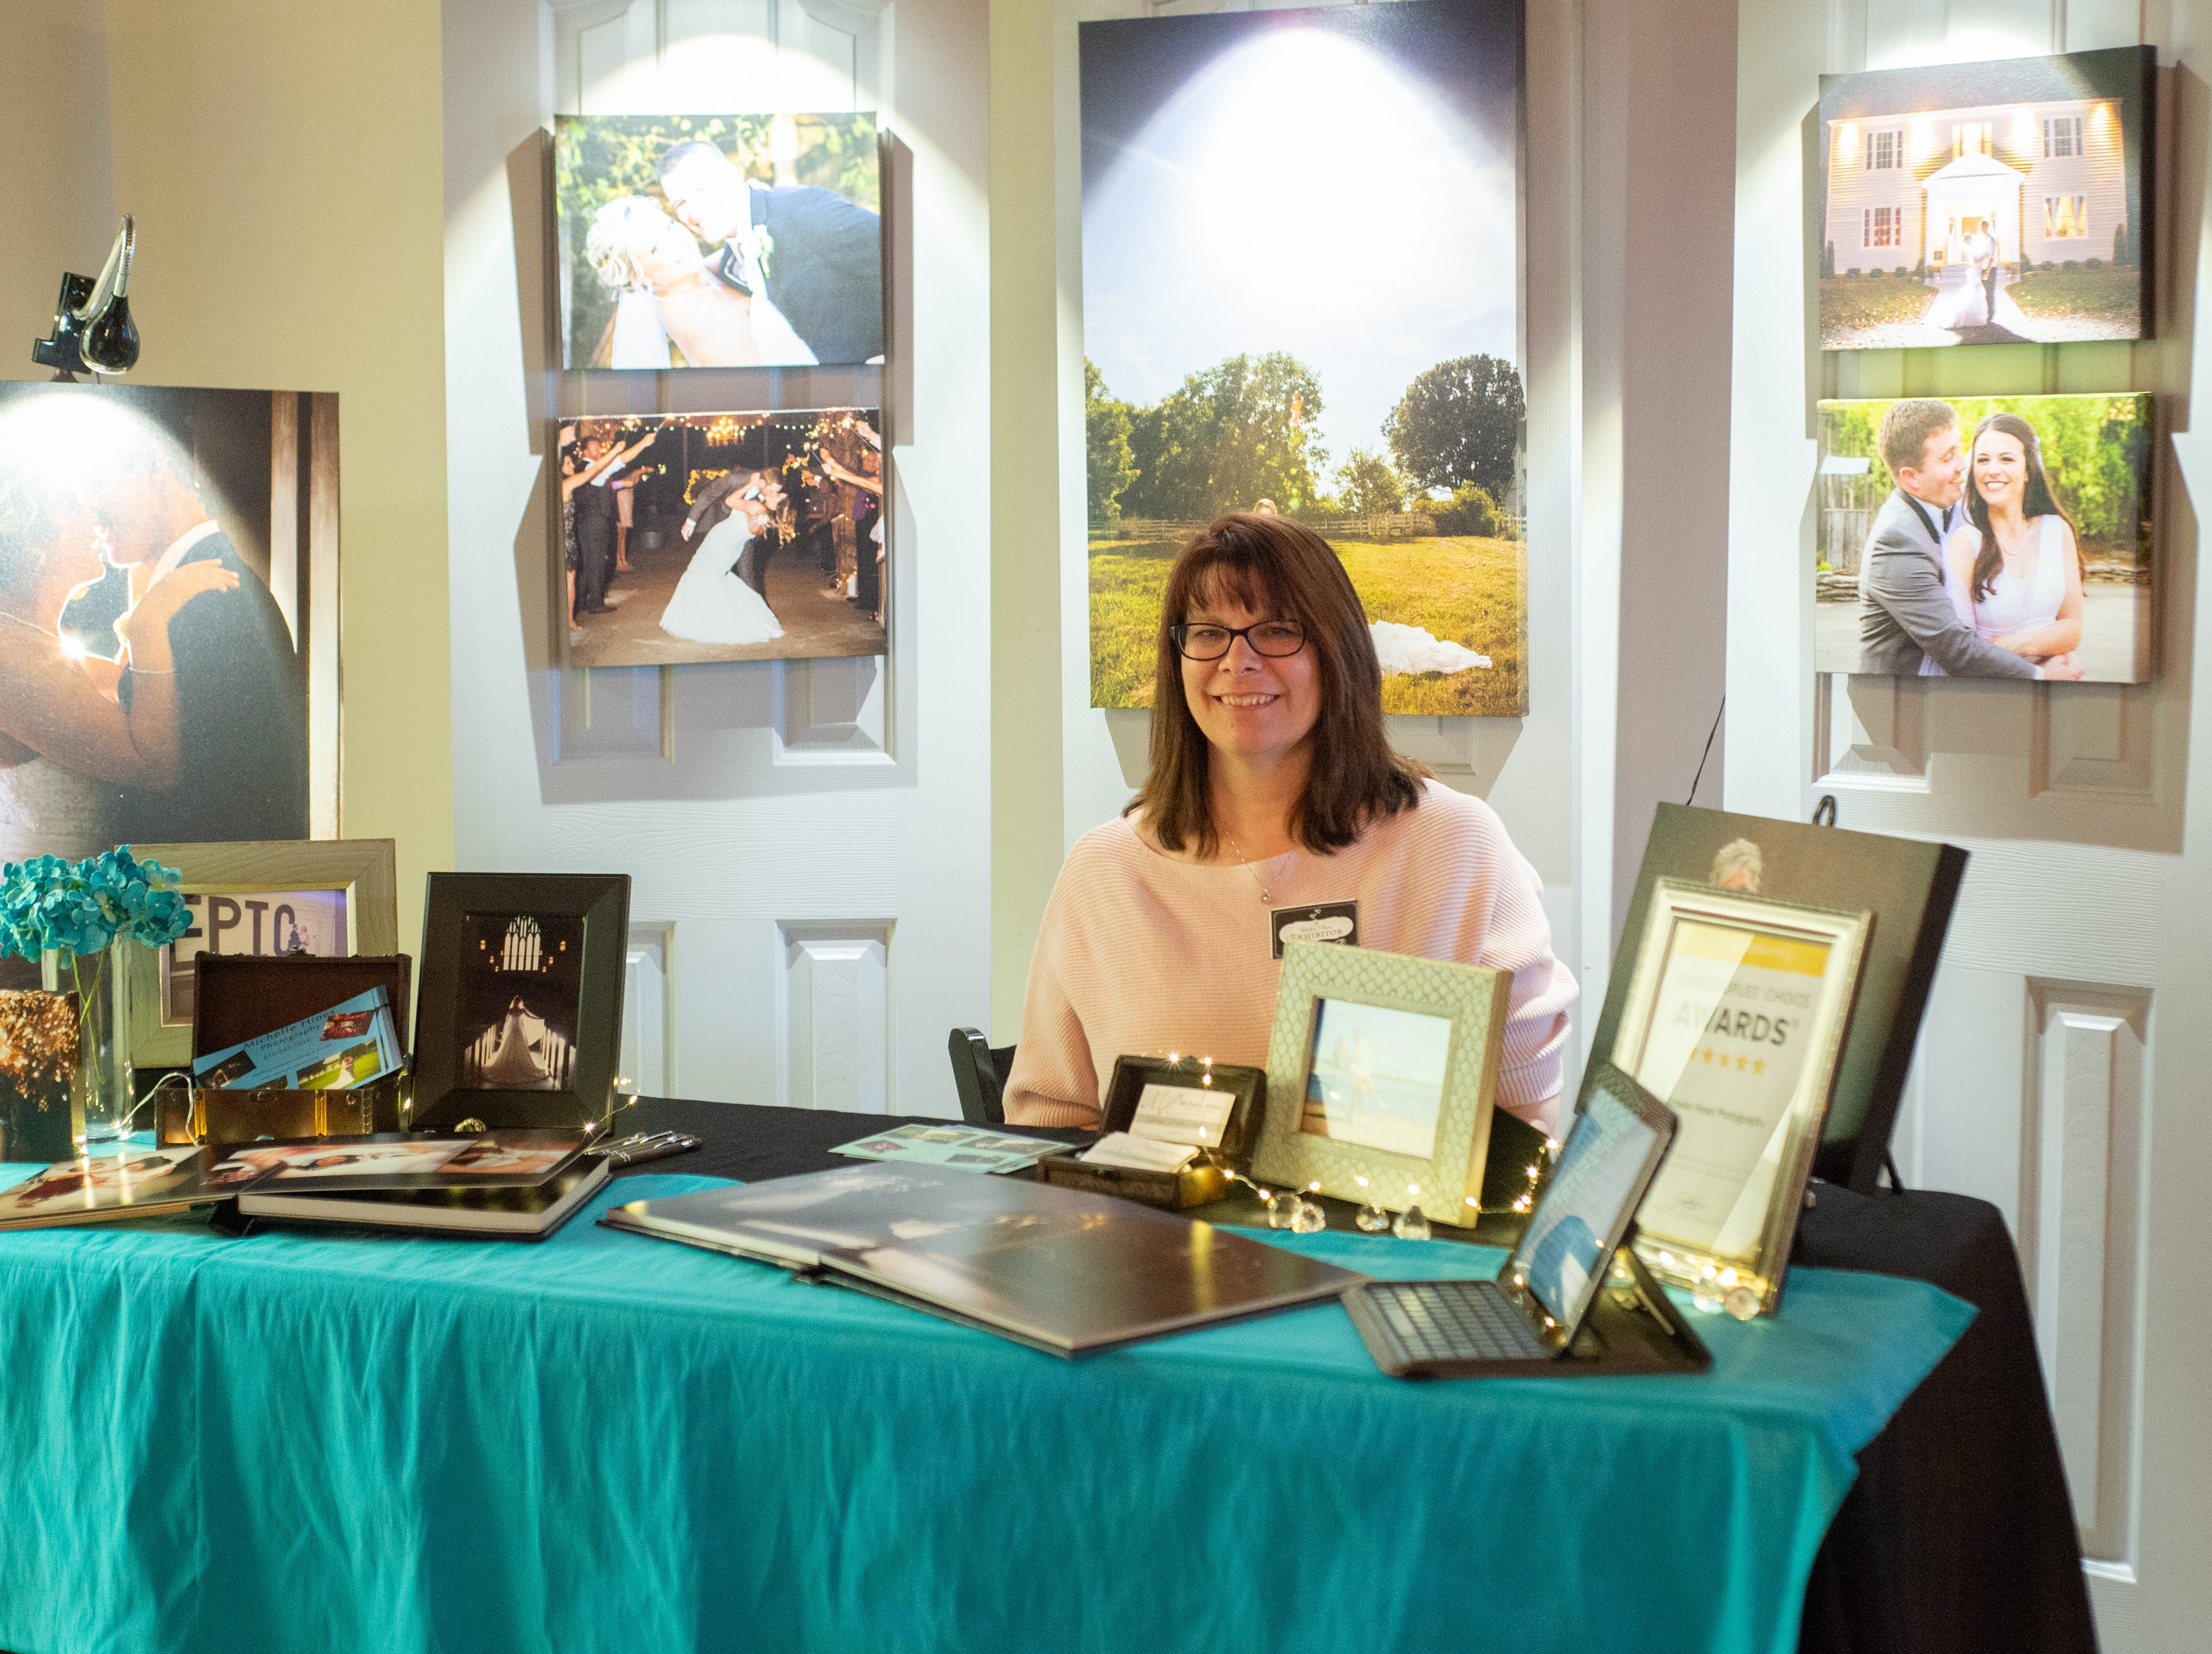 Michelle Hines Photography got to interact with attendees at the Sumner County Bridal Show with Epic Event Center in Gallatin on Sunday, Jan. 27.